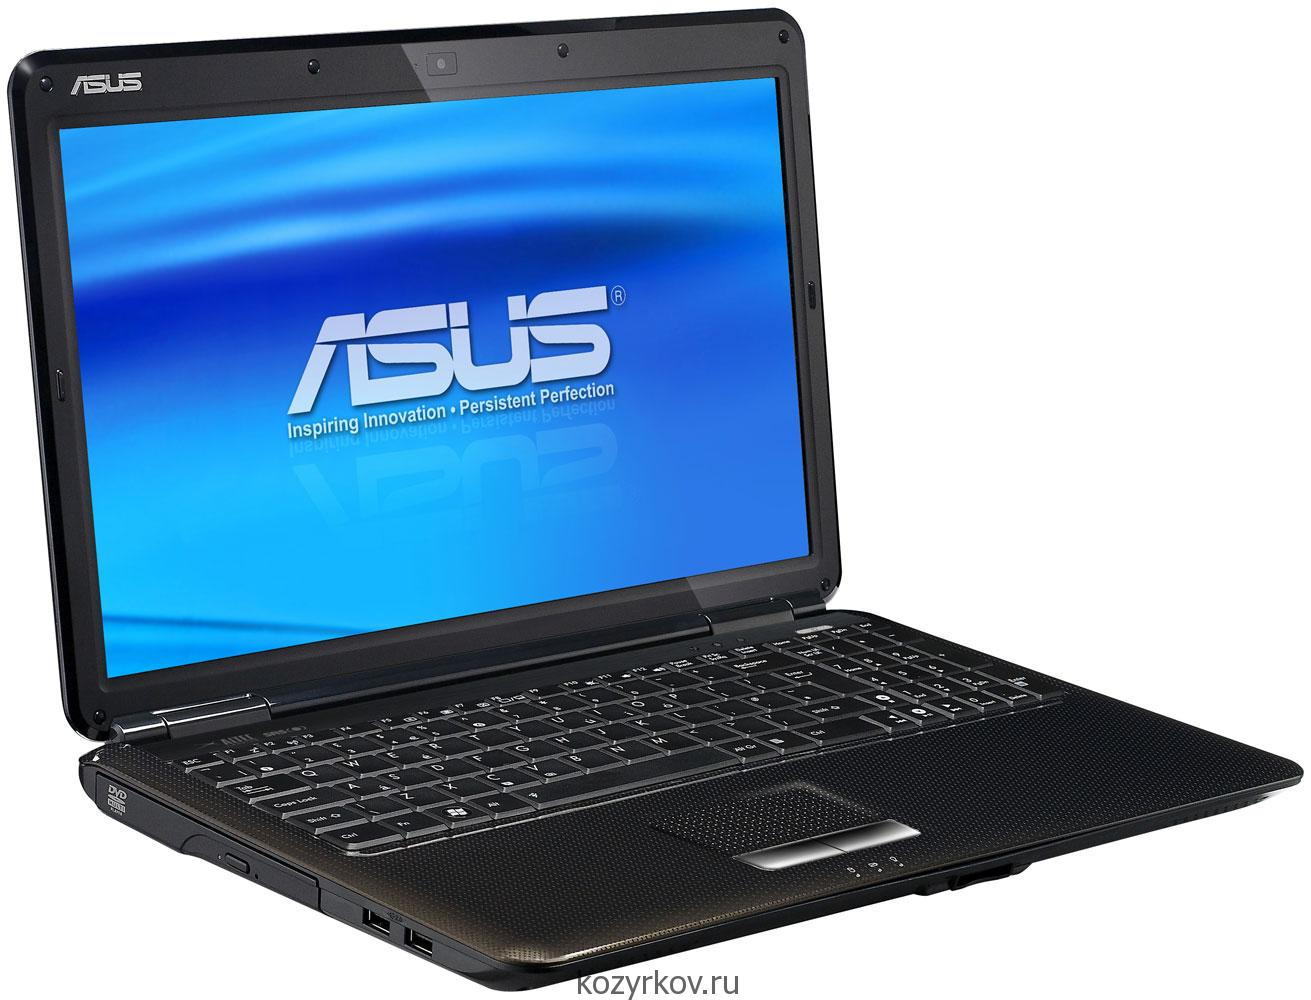 Asus U31SD Keyboard Device Filter Driver Windows